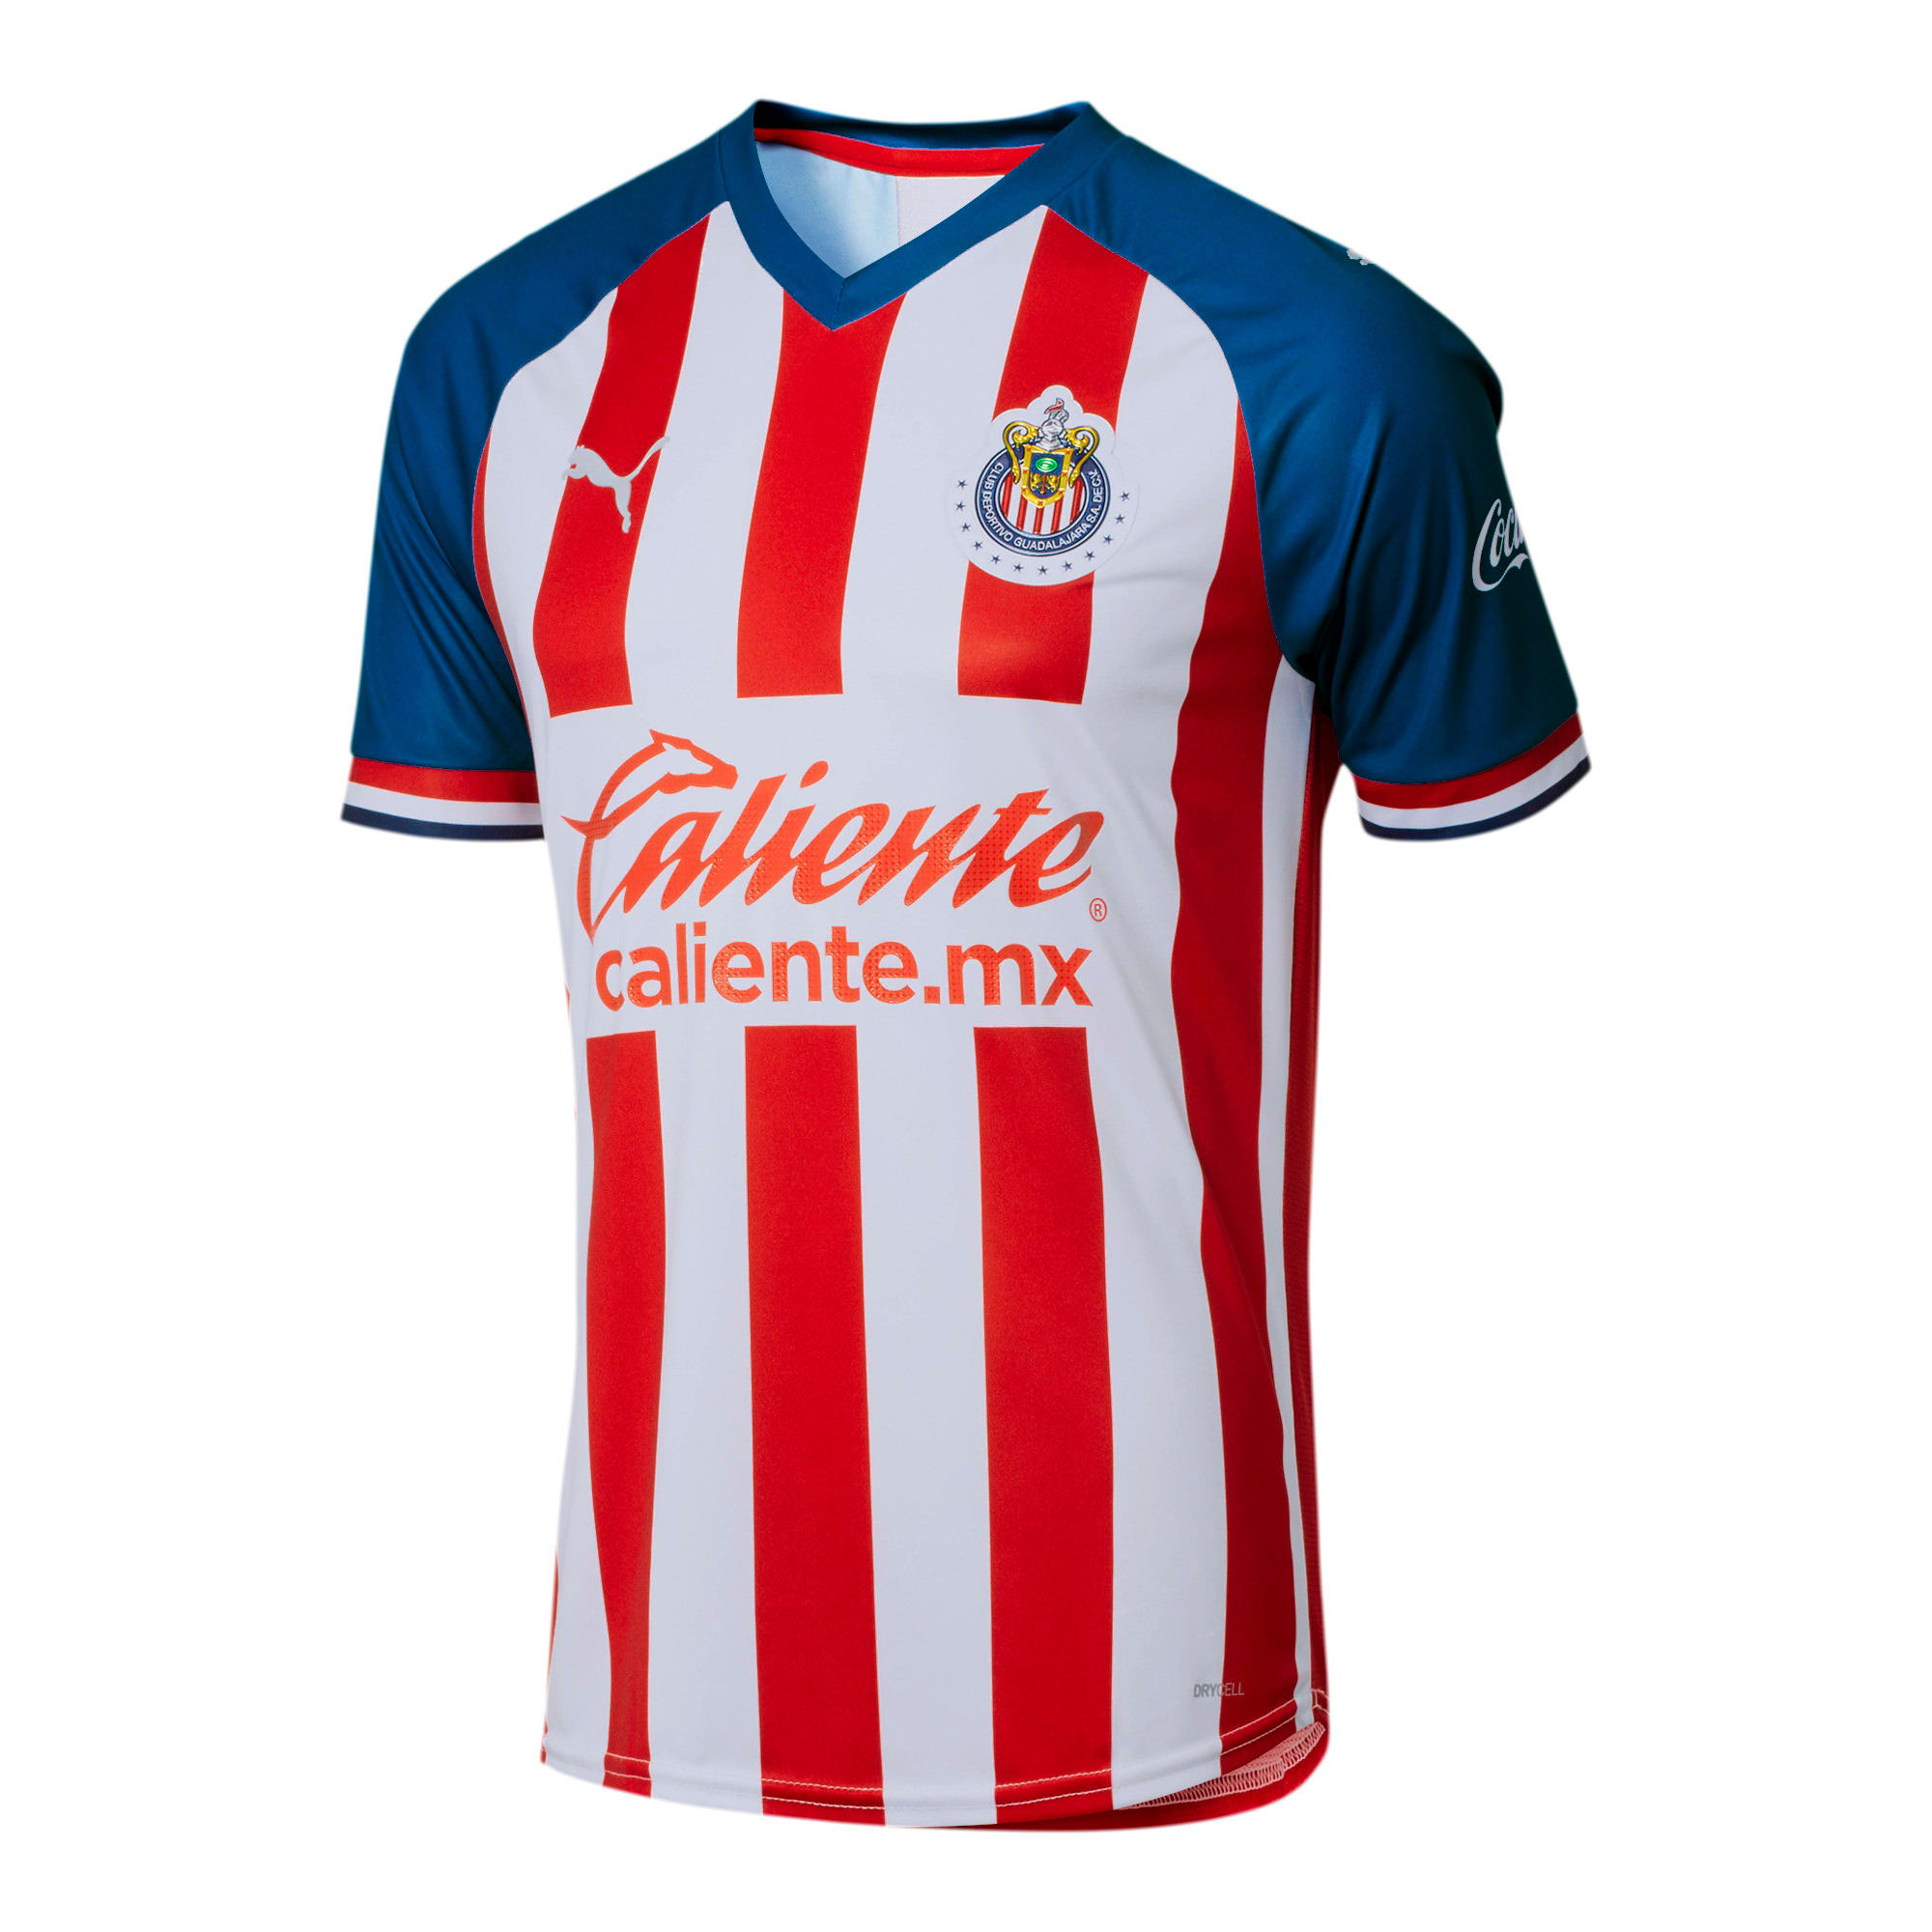 finest selection 58dfc 758b6 Chivas 2019-20 Men's Home Promo Jersey